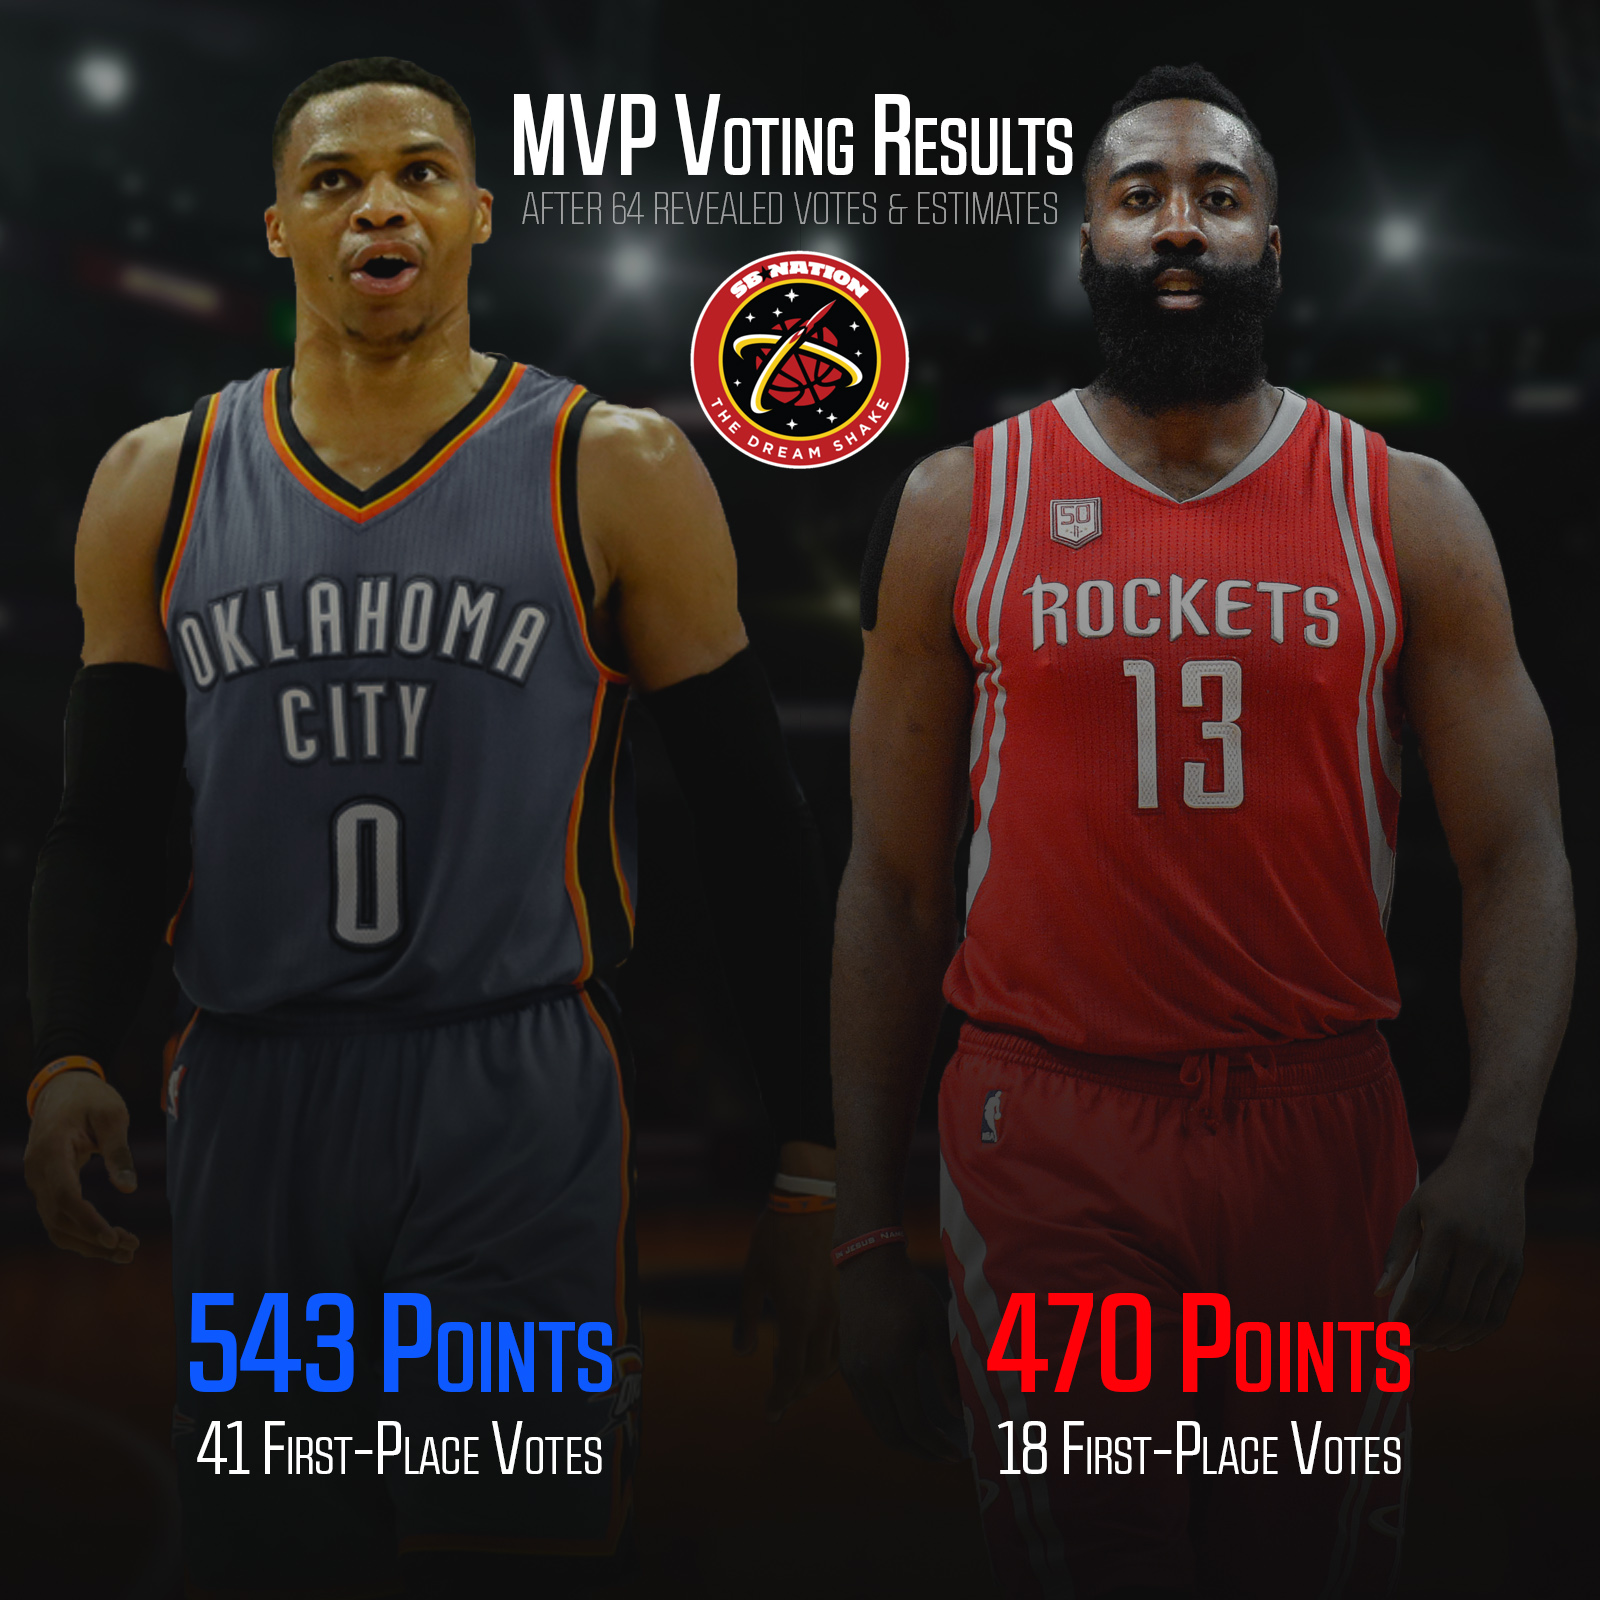 James Harden Total Points: Russell Westbrook Will Win The NBA MVP Award Over James